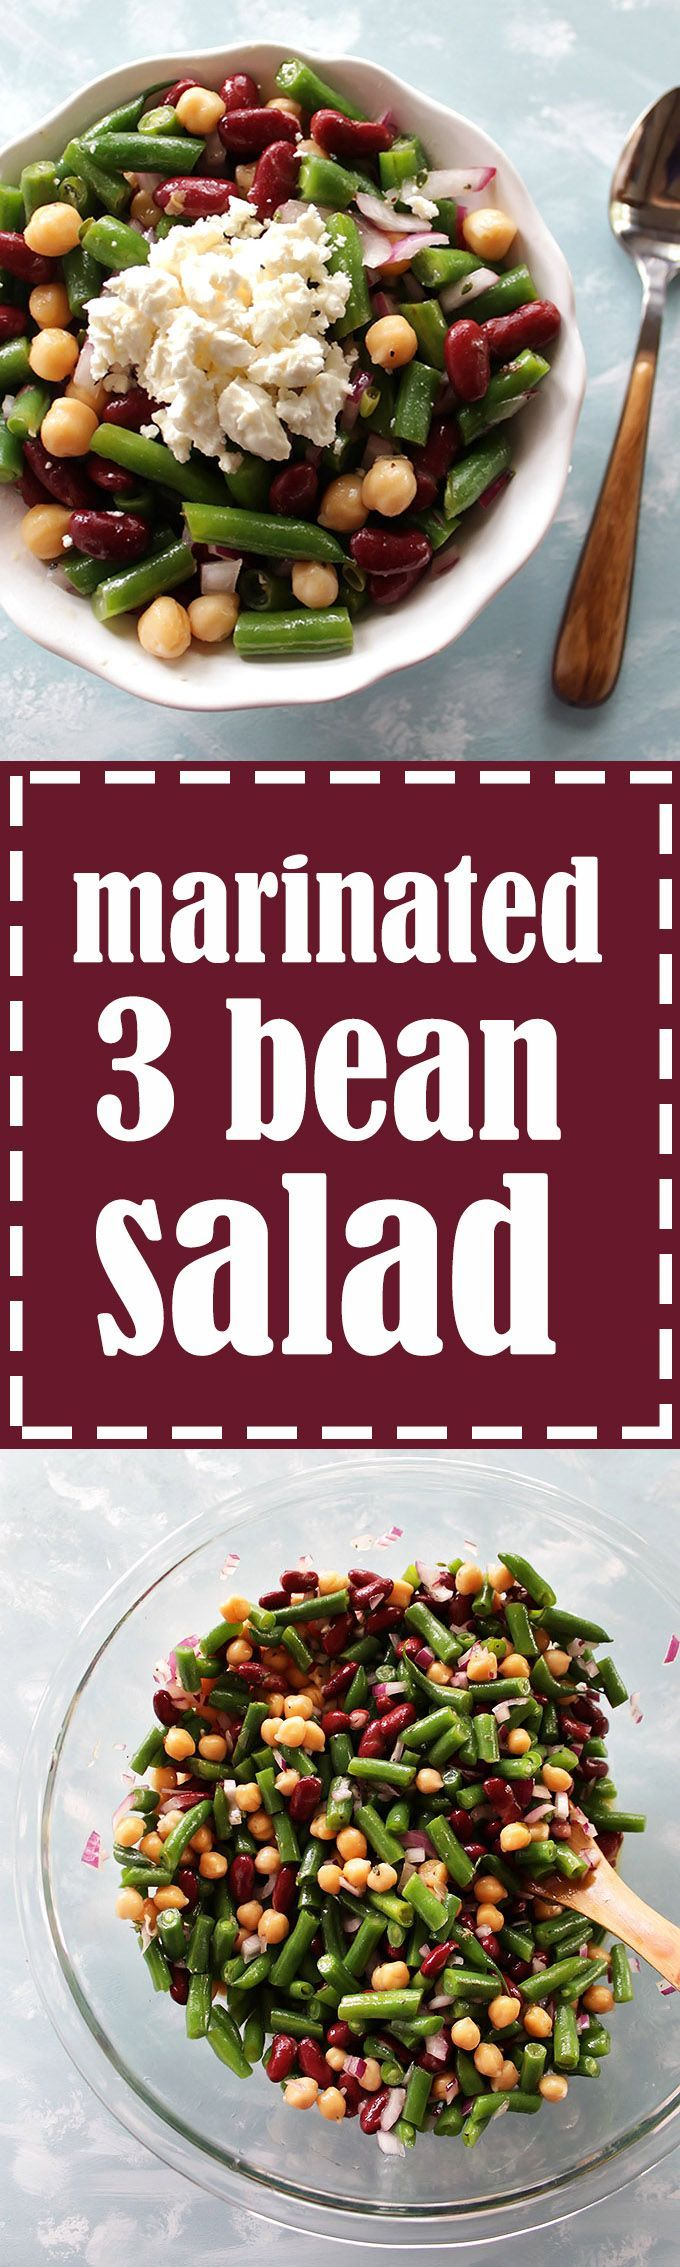 Marinated 3 Bean Salad - This salad is perfect for school/work lunches or prepping meals. It makes a huge batch and lasts for up to one week! Crunchy green beans, creamy red kidney beans, and chickpeas all marinate in a tangy red wine vinaigrette. This recipe is EASY to make! Vegan/gluten free.